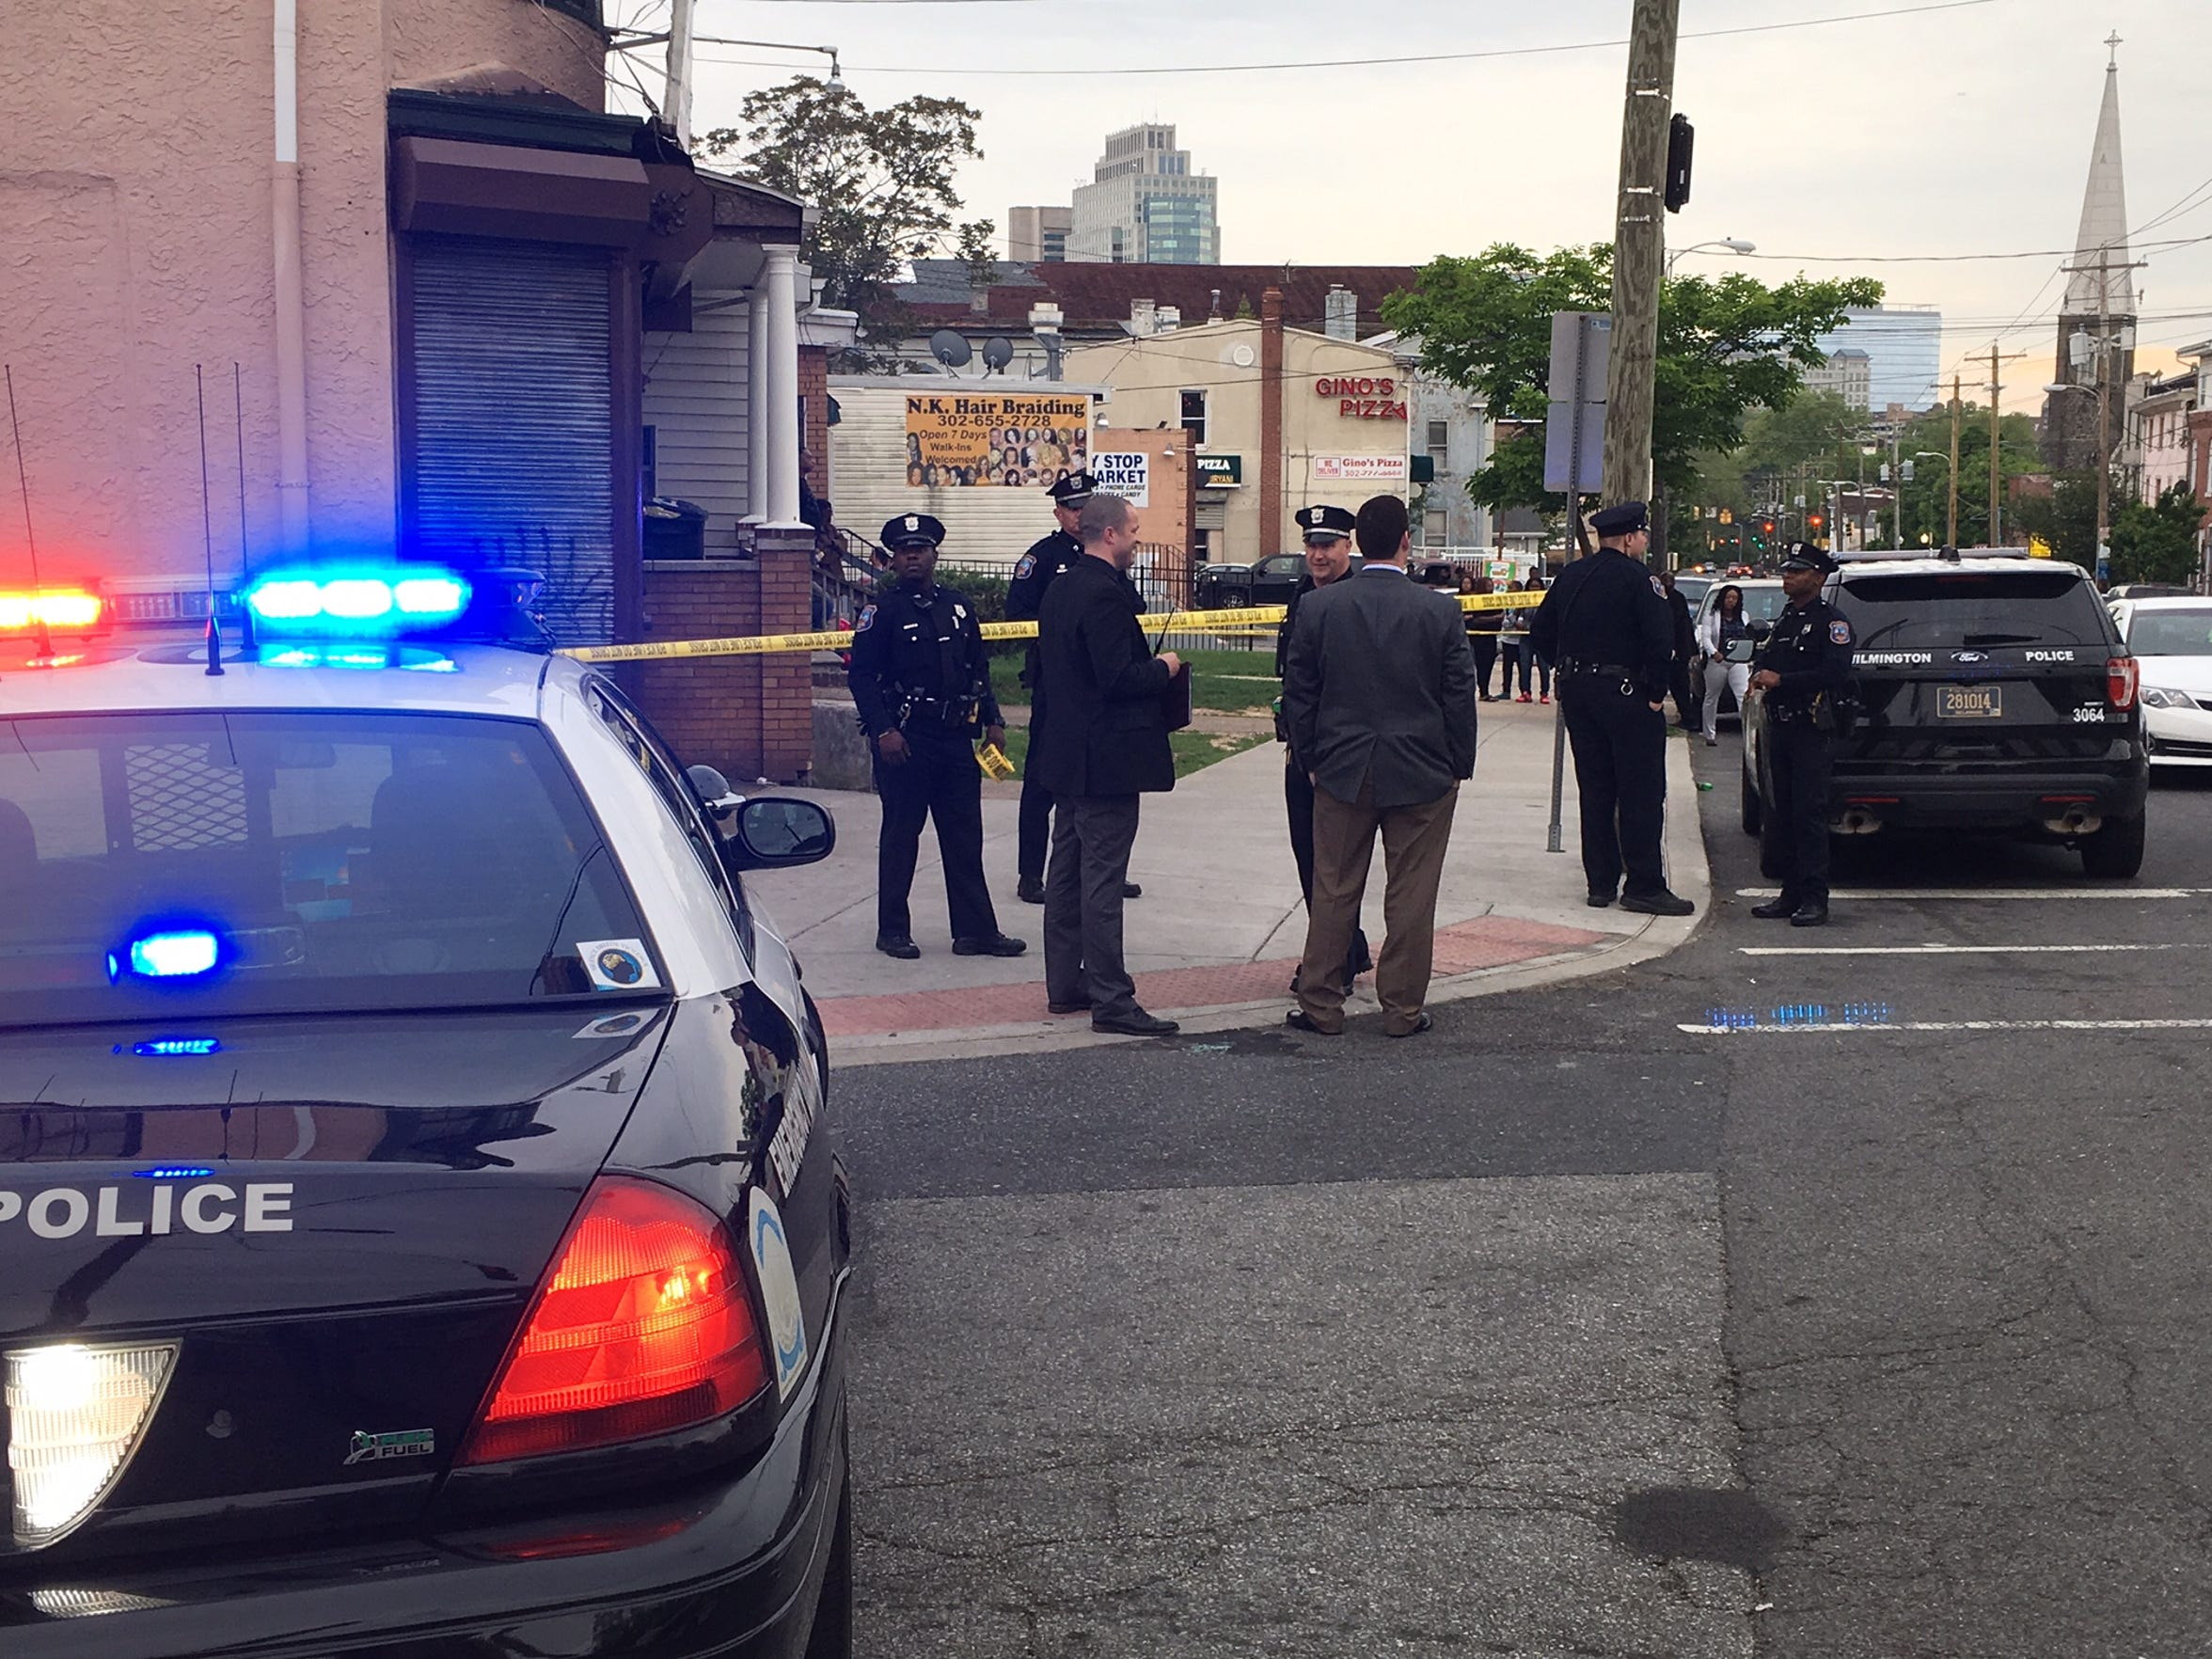 Police investigating a shooting in which a 14-year-old boy was injured.